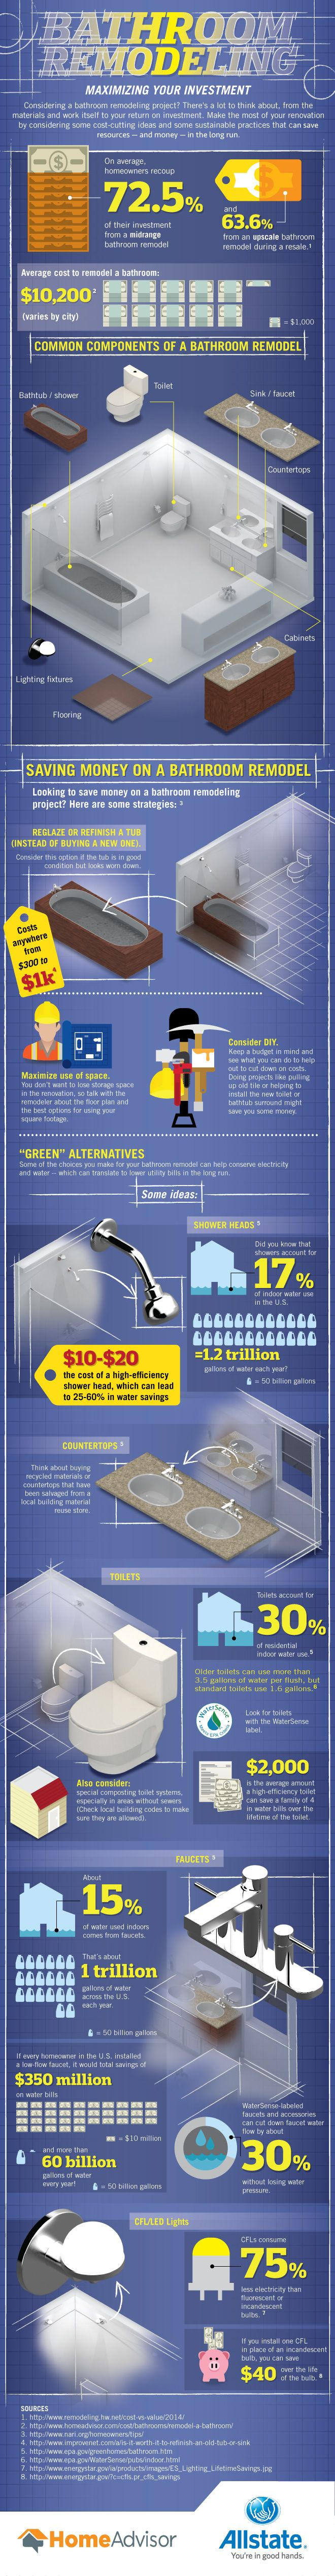 infographic maximize your bathroom remodel investment